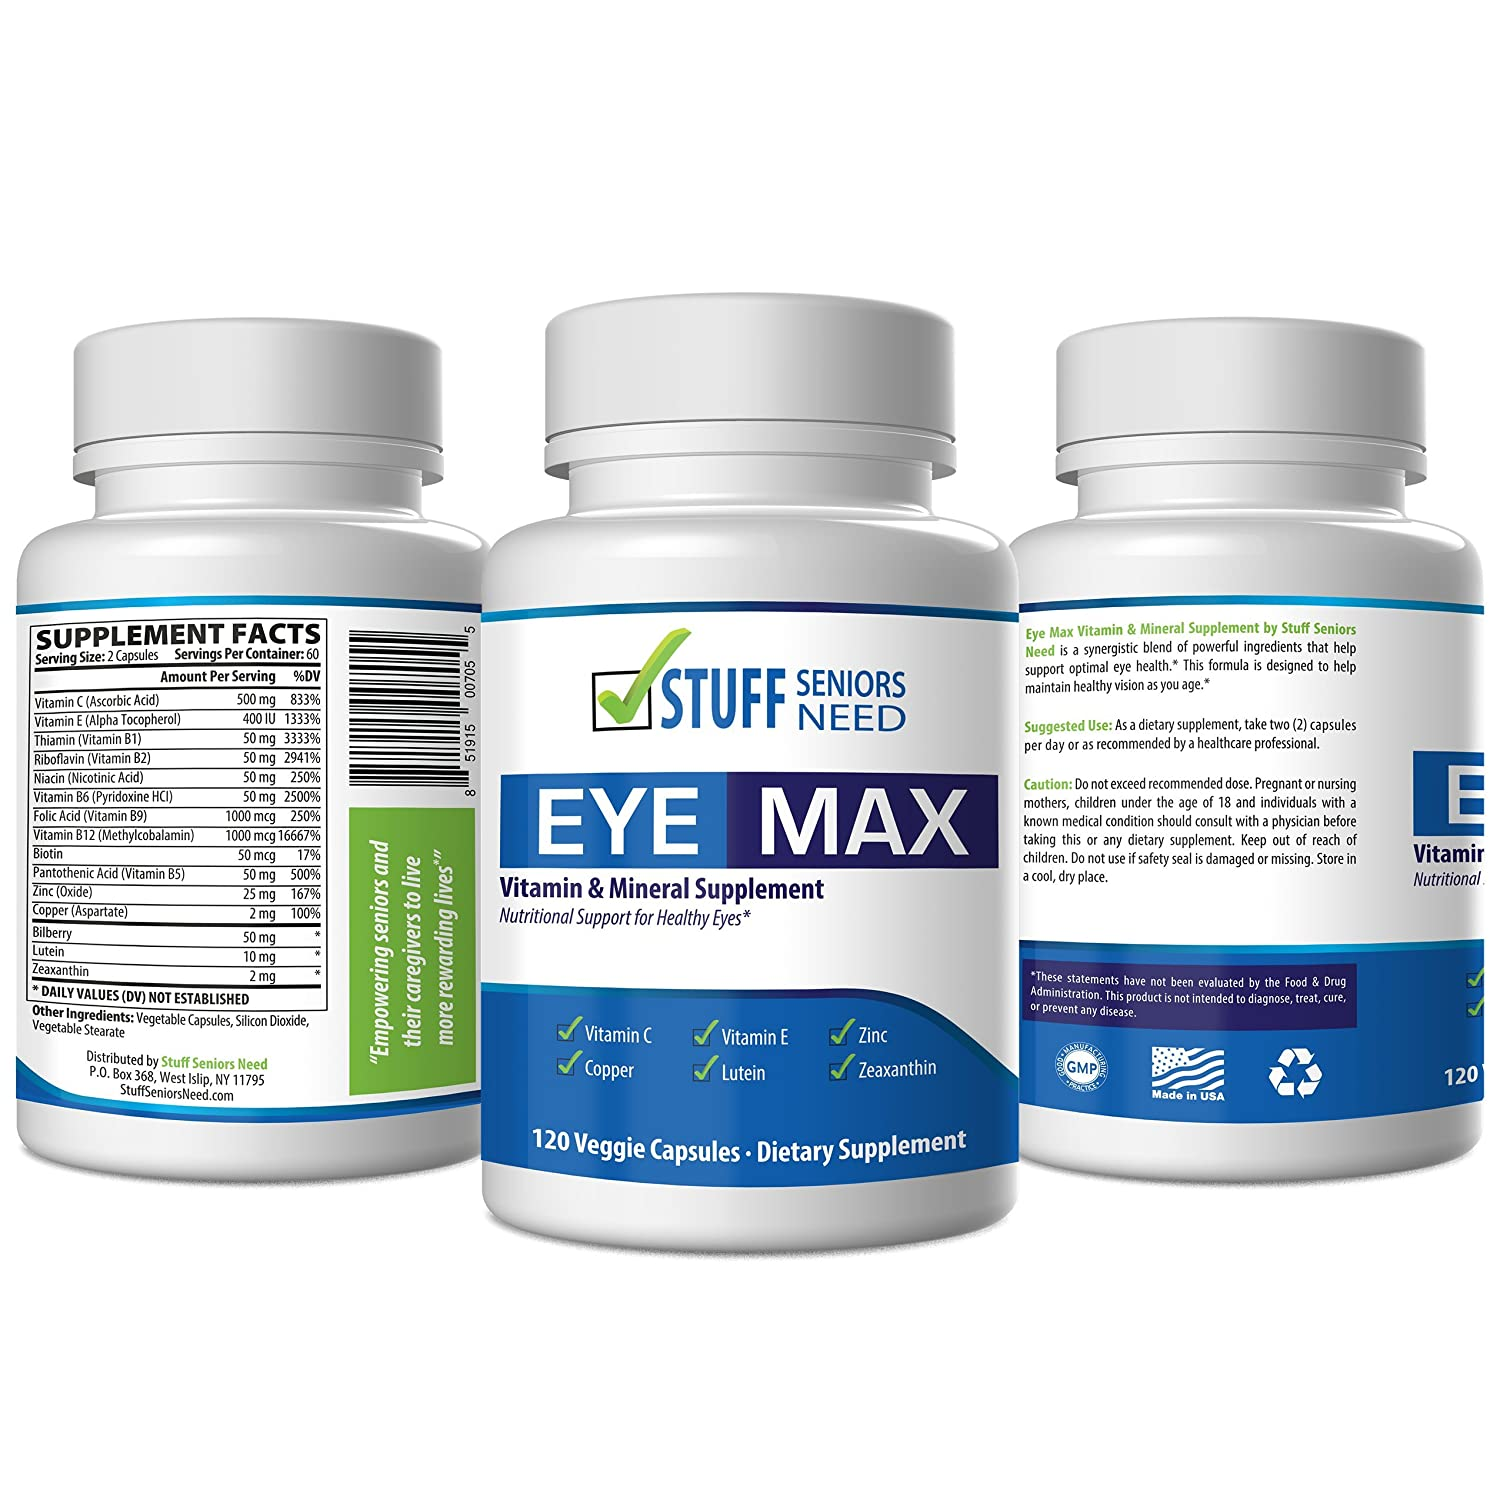 ... Vitamin & Mineral Supplement for Eye Care - 120 Veggie Capsules -  Vitamin C, Vitamin E, Zinc, Copper, Lutein 10 mg and Zeaxanthin 2mg from  Stuff Seniors ...